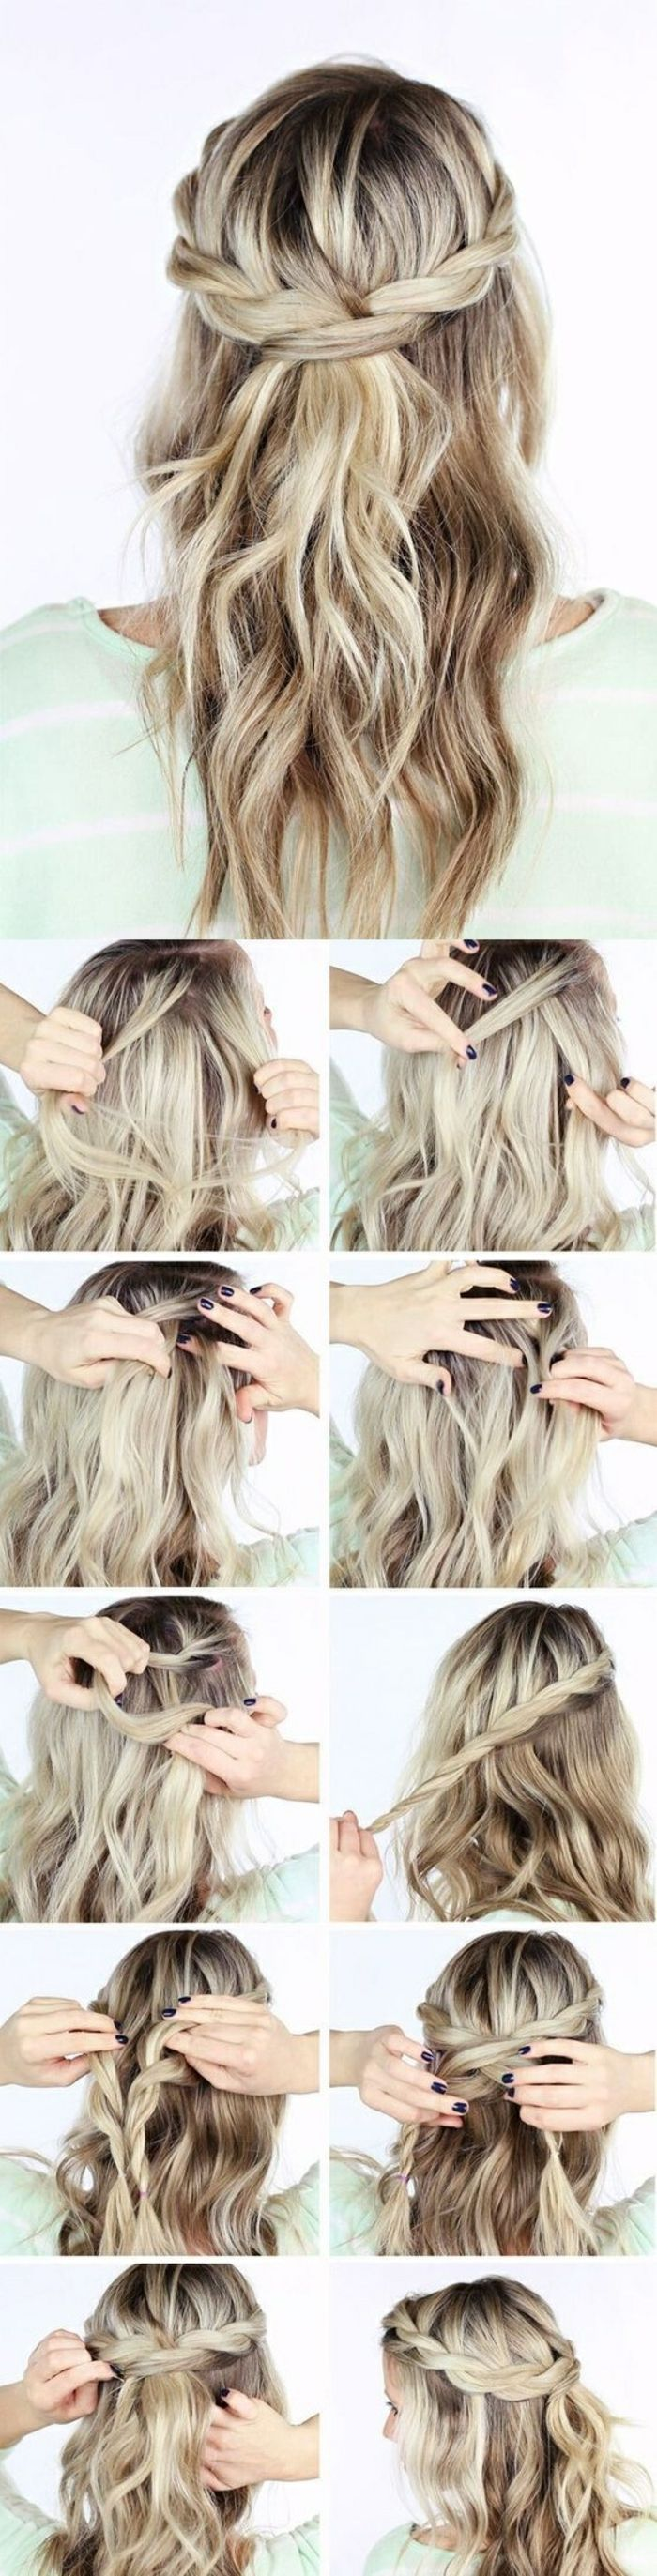 ▷ 1001+ ideas and instructions on how to make braided hairstyles yourself – Hairstyle